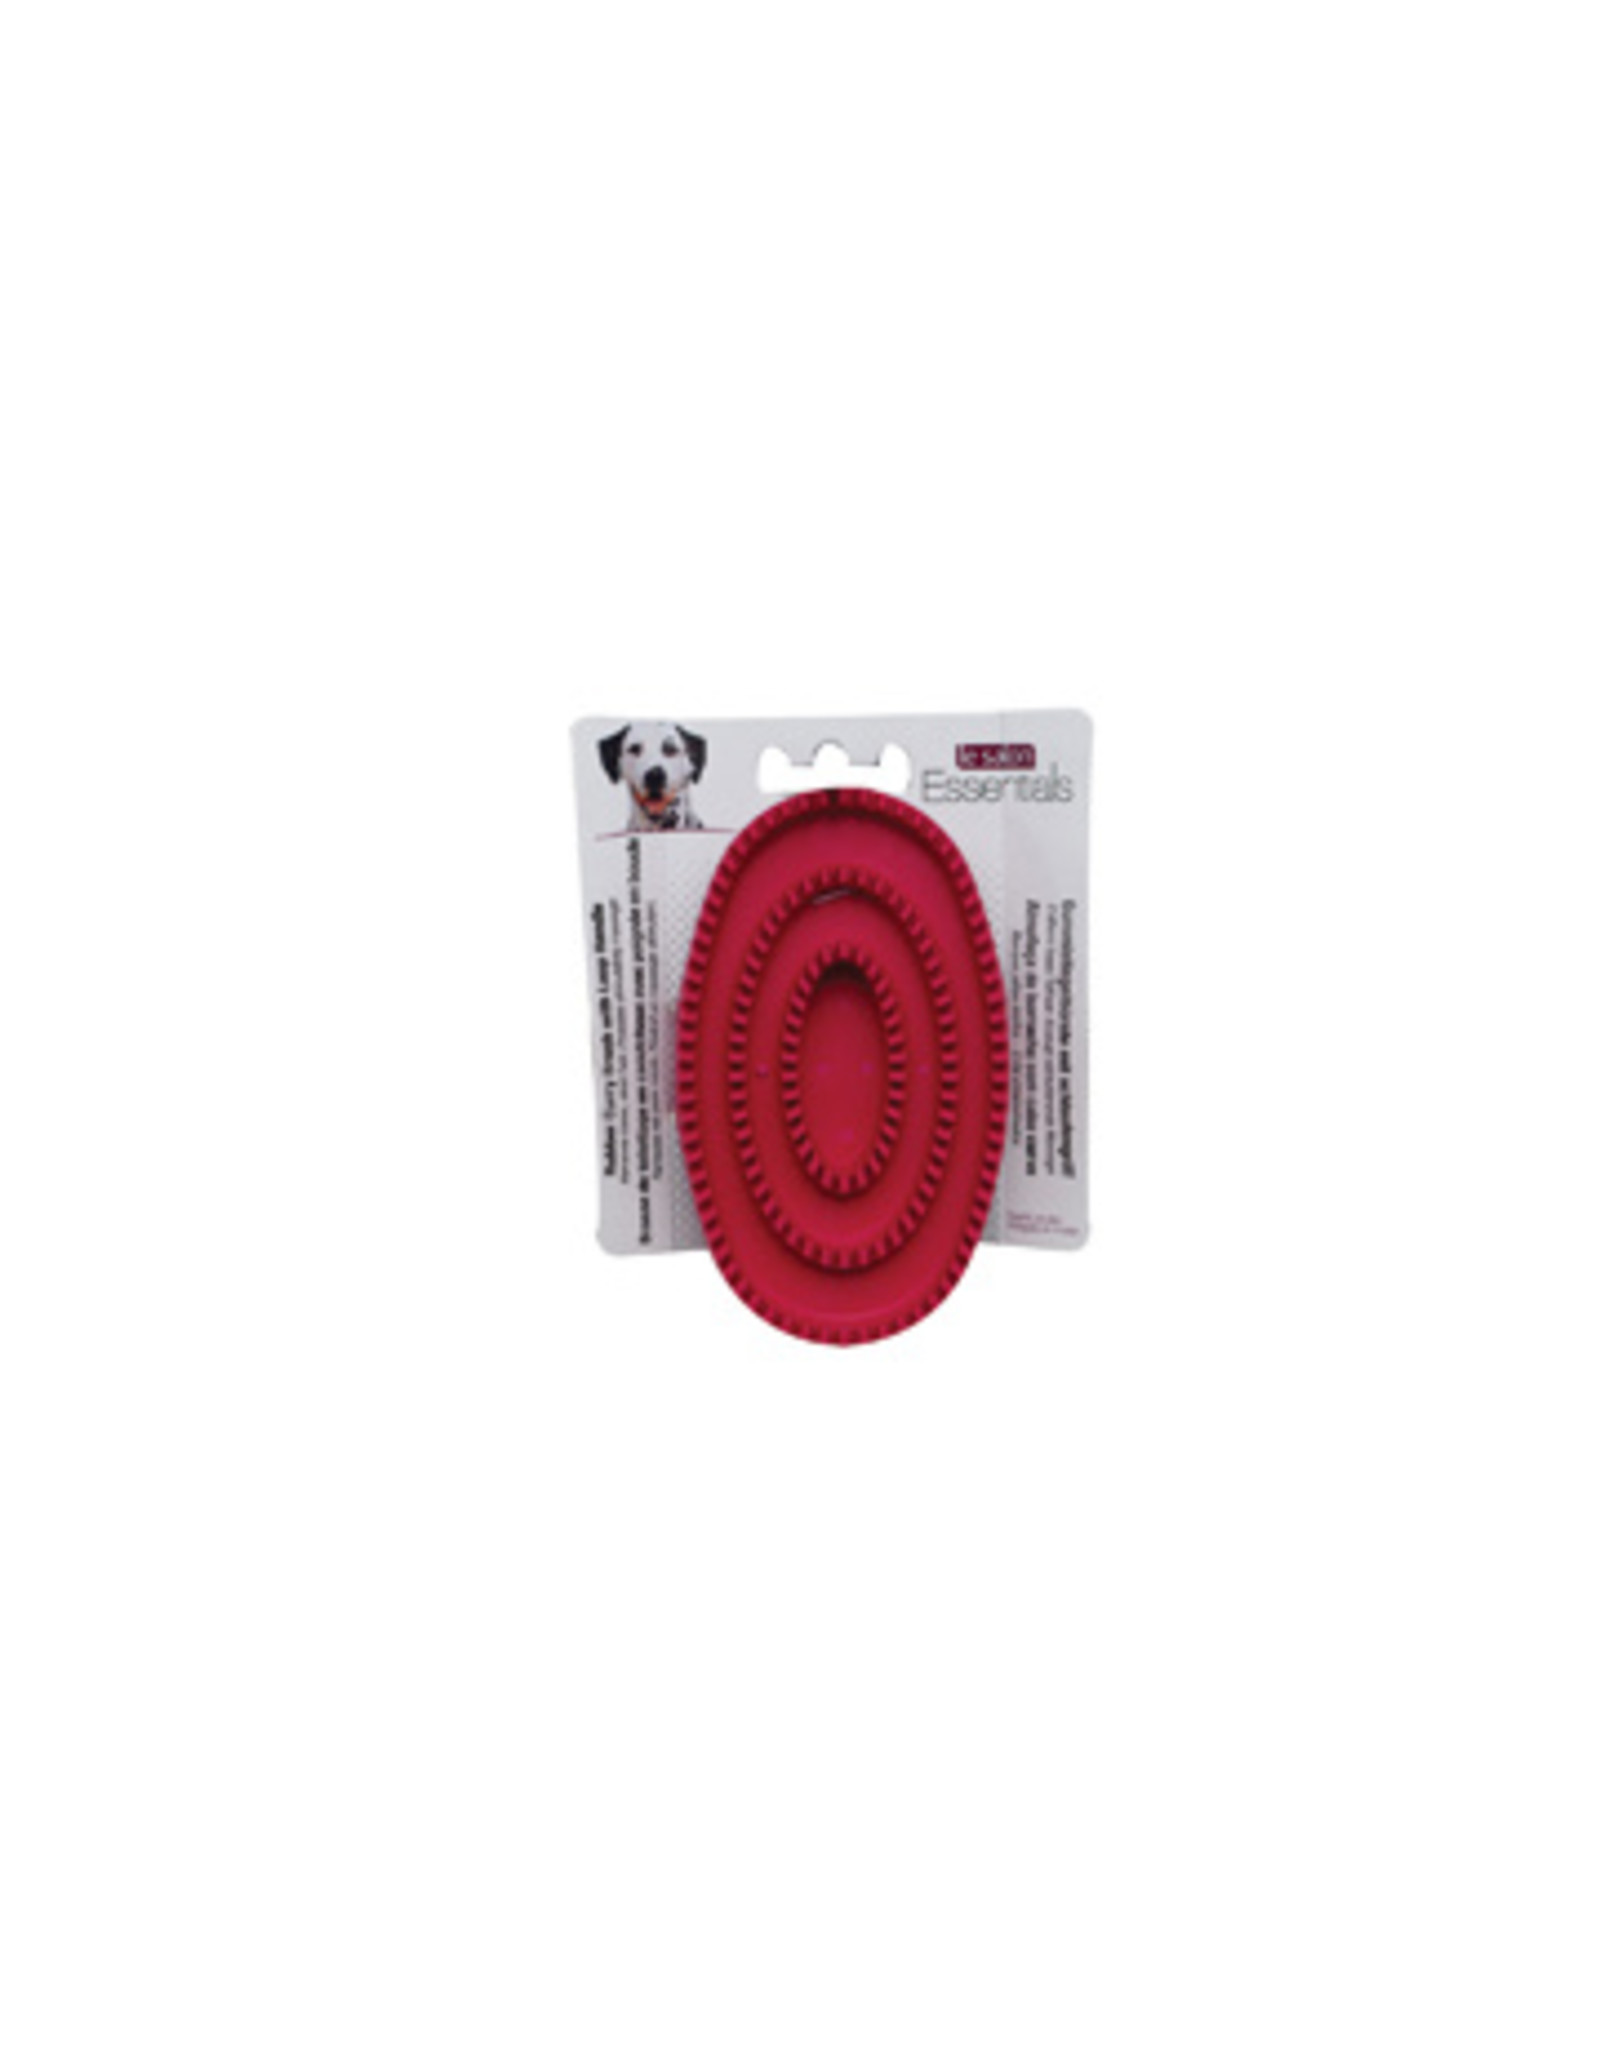 LS - Le Salon Le Salon Essentials Dog Rubber Curry Brush with Loop Handle, Red